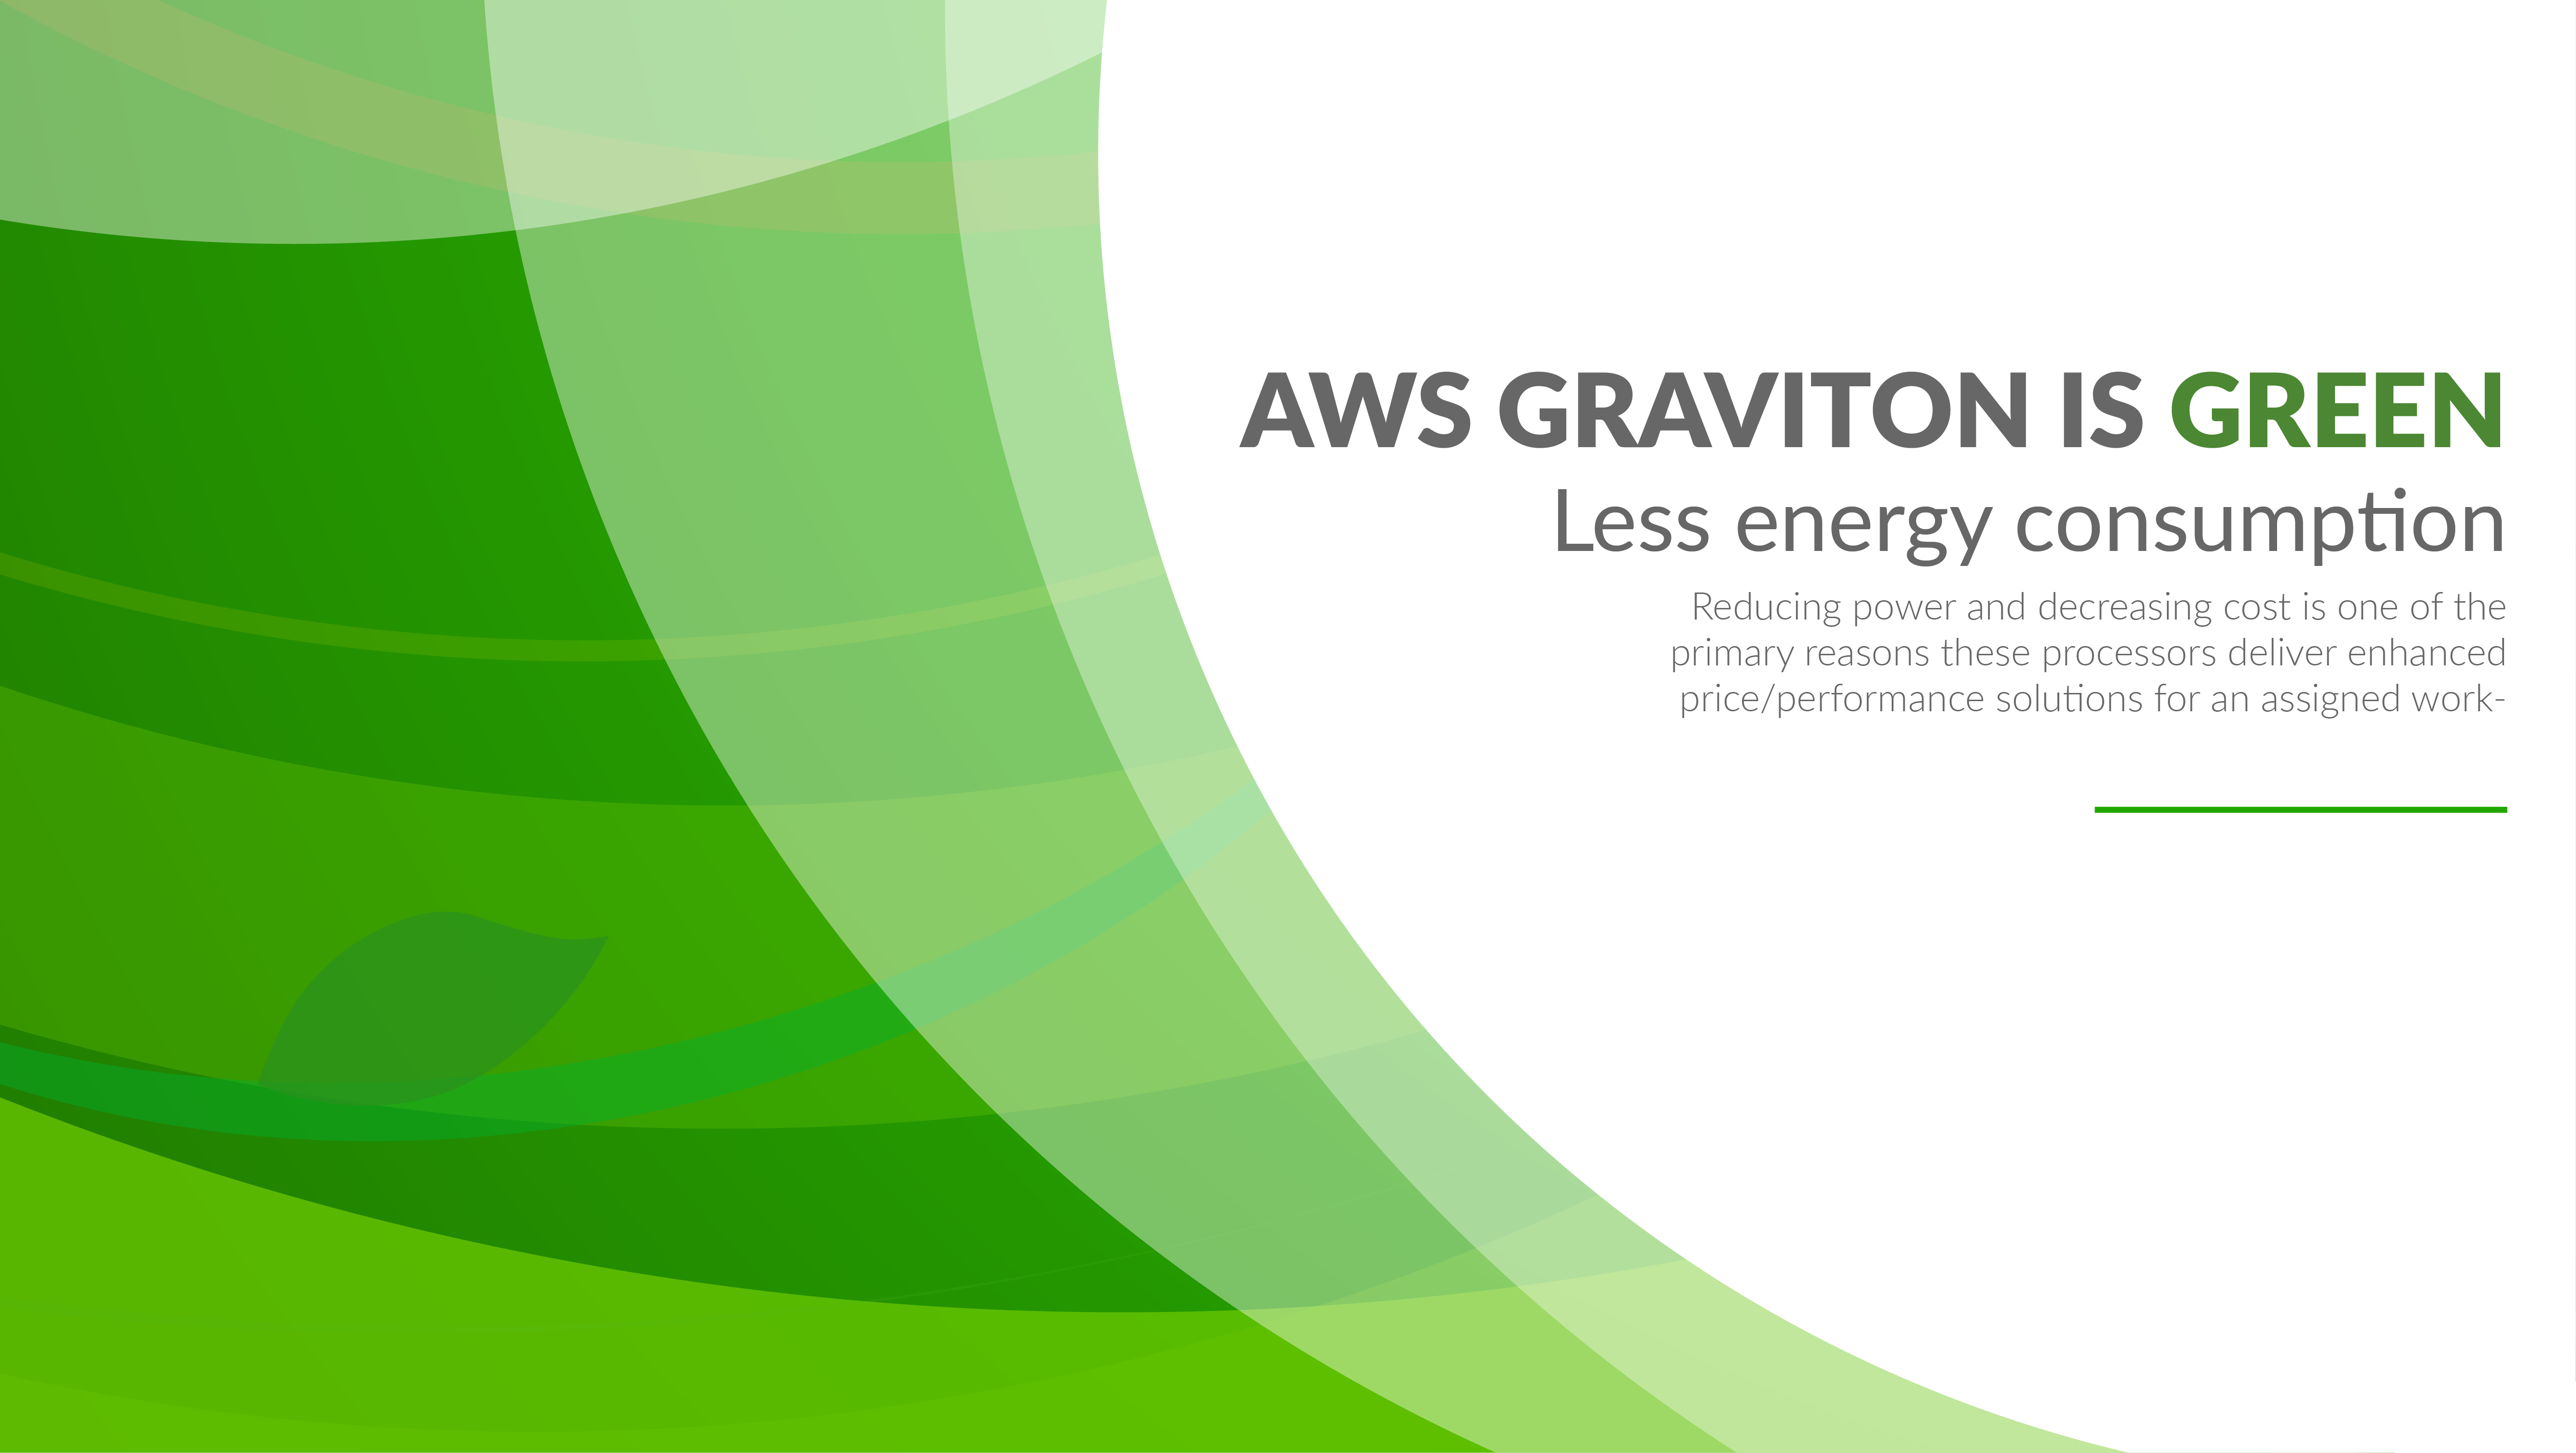 AWS Graviton is Green - Consumes Less energy